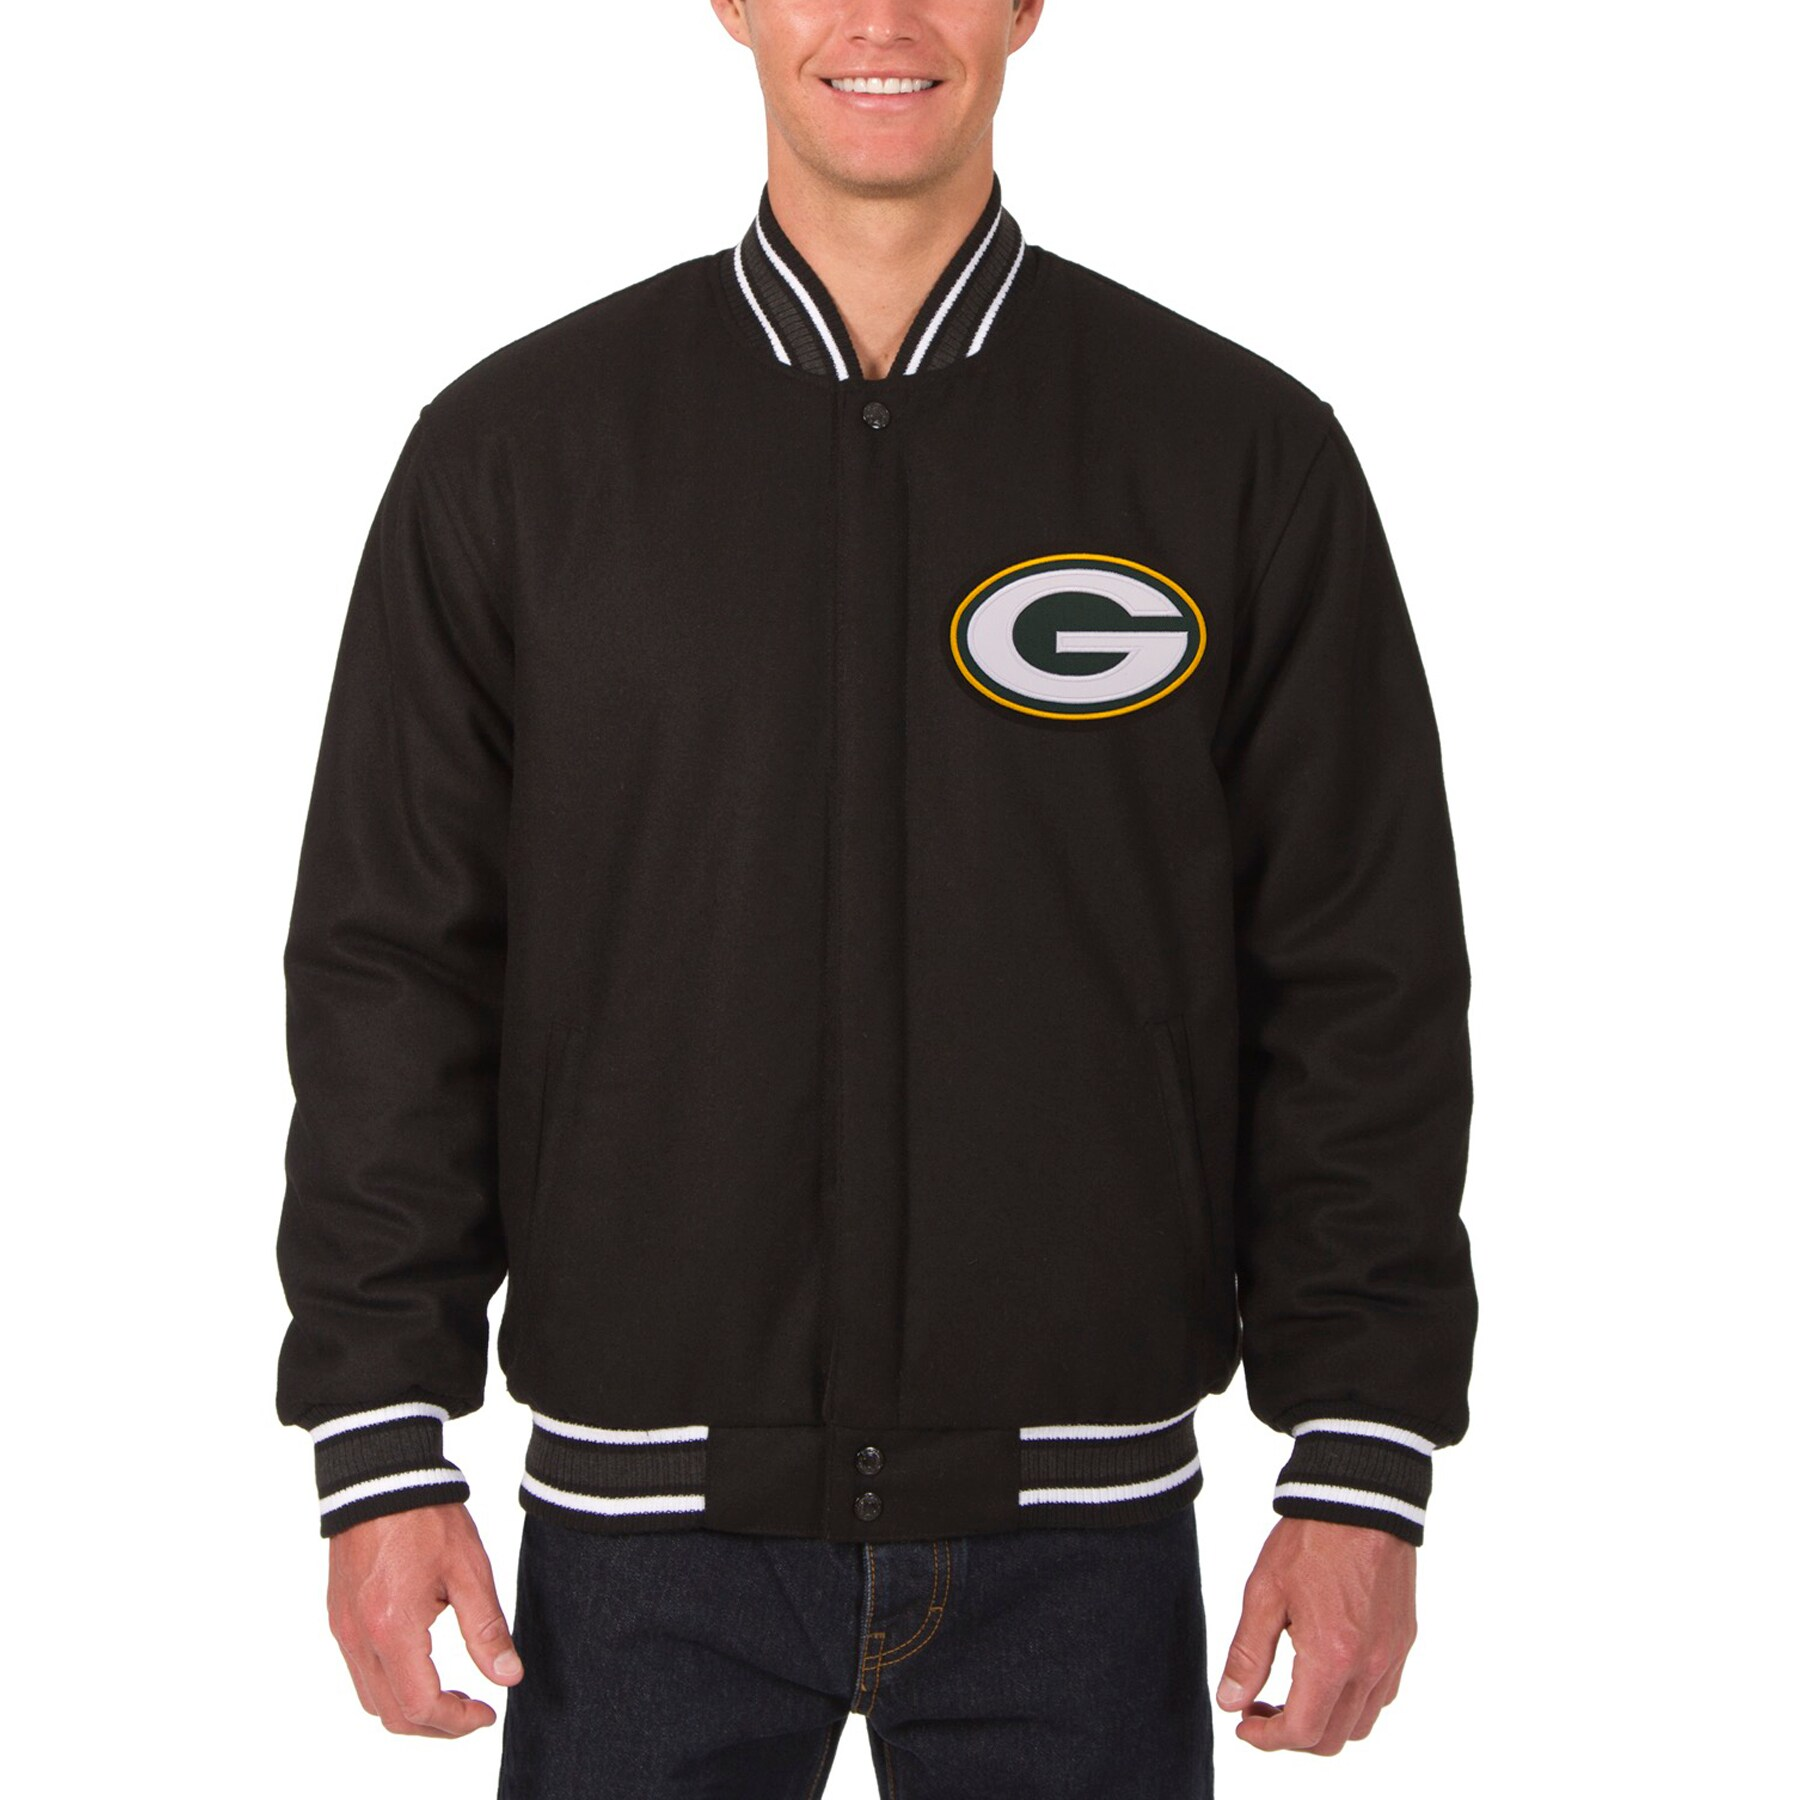 Green Bay Packers JH Design Wool Reversible Jacket with Embroidered Logos - Black